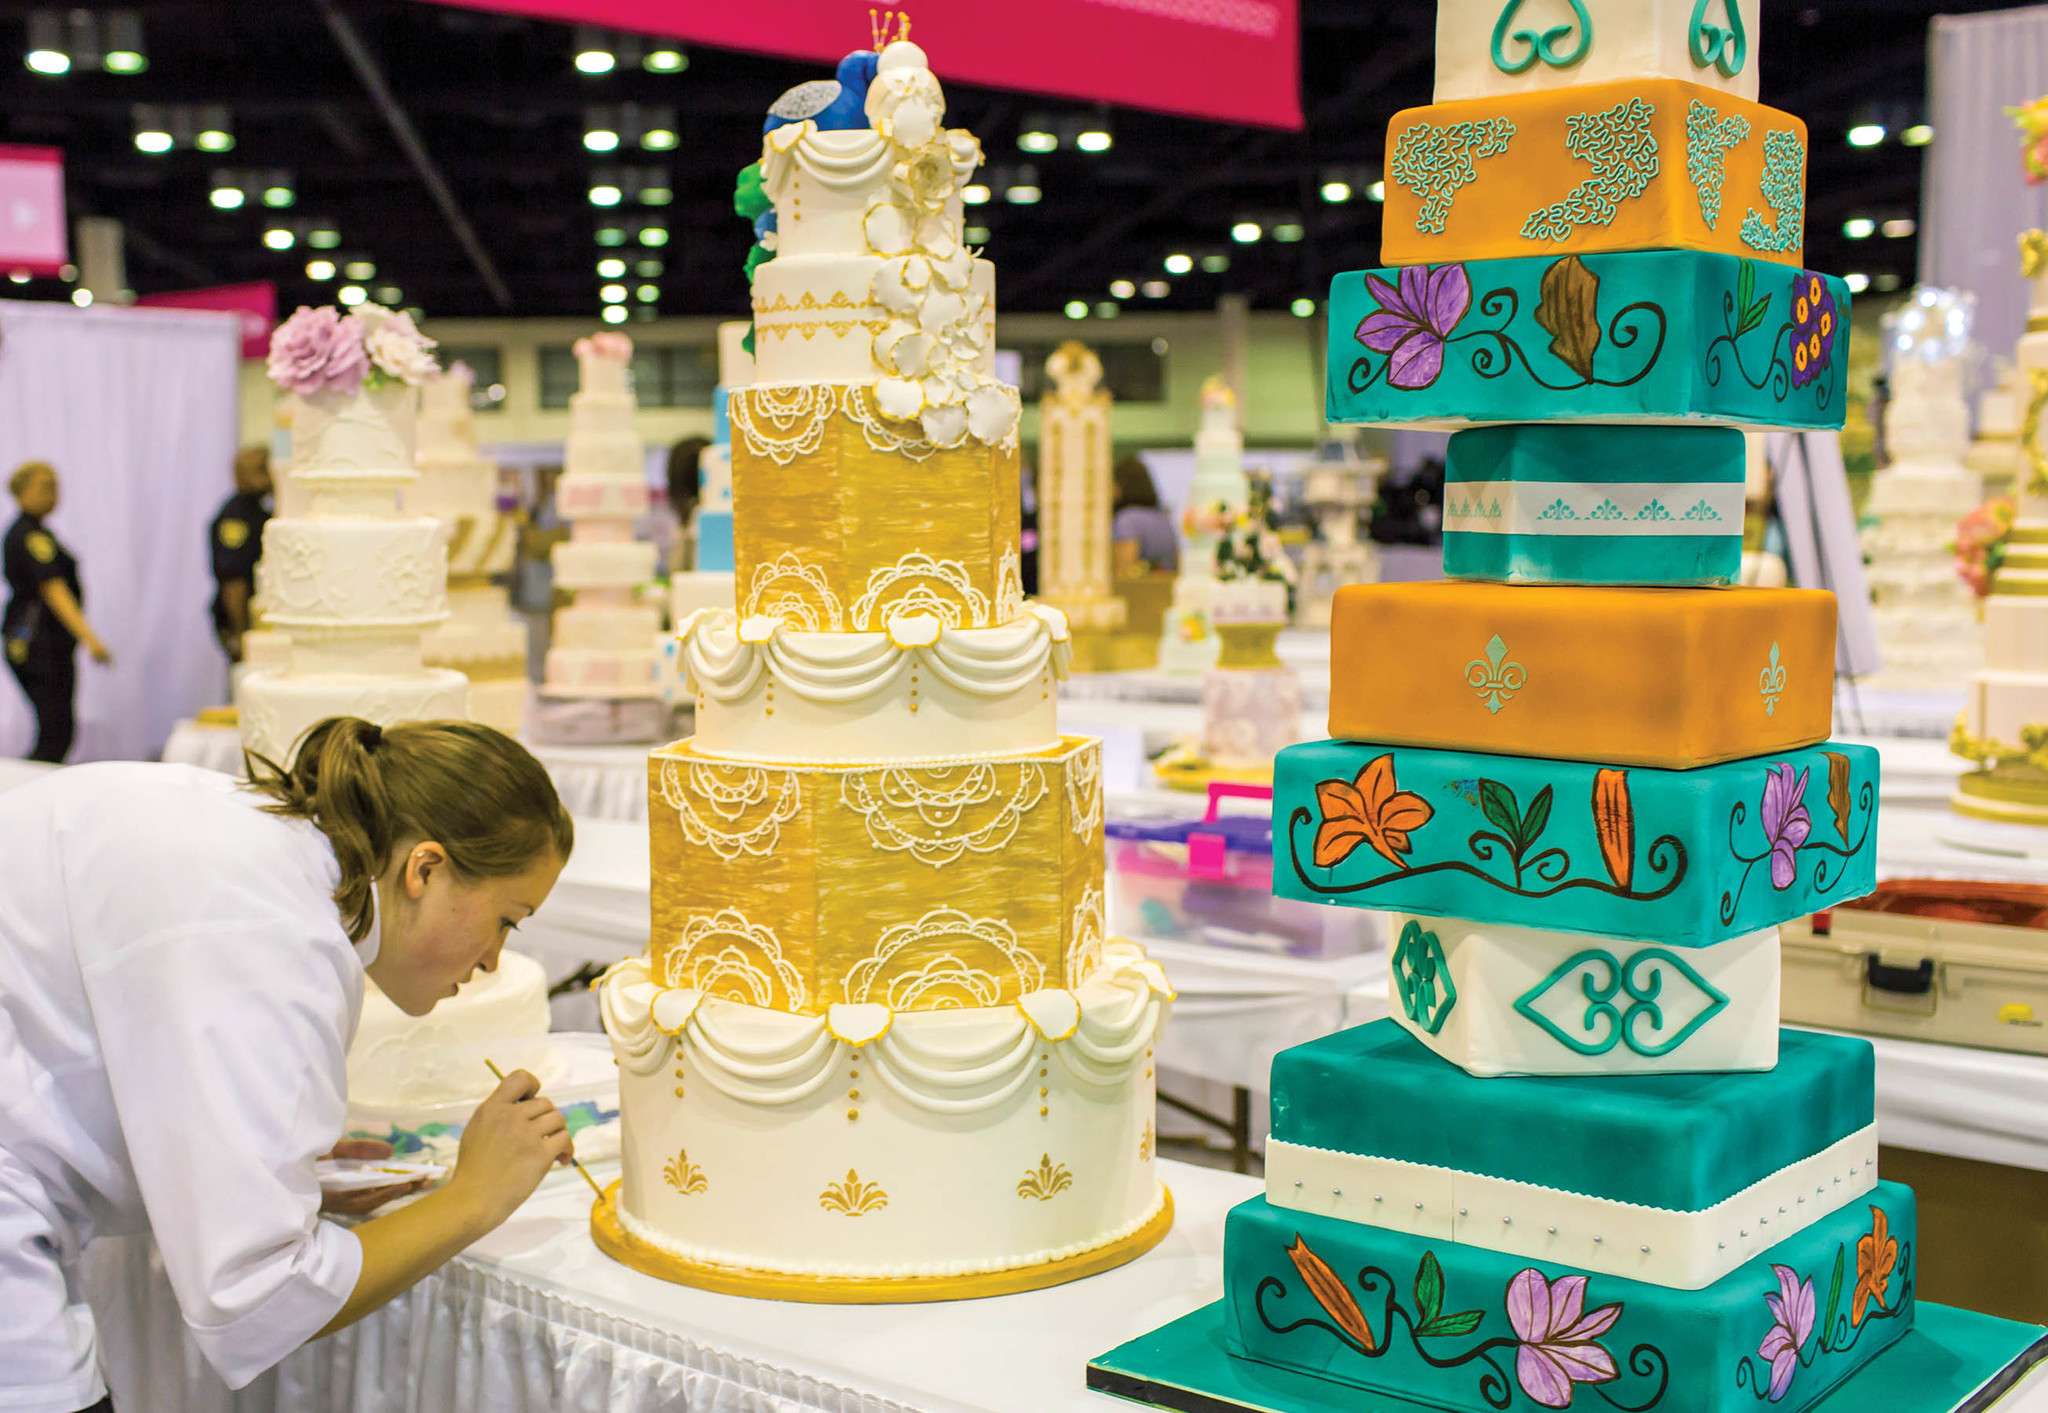 Cake Decorating Expo : Largest cake expo in North, South America coming to ...